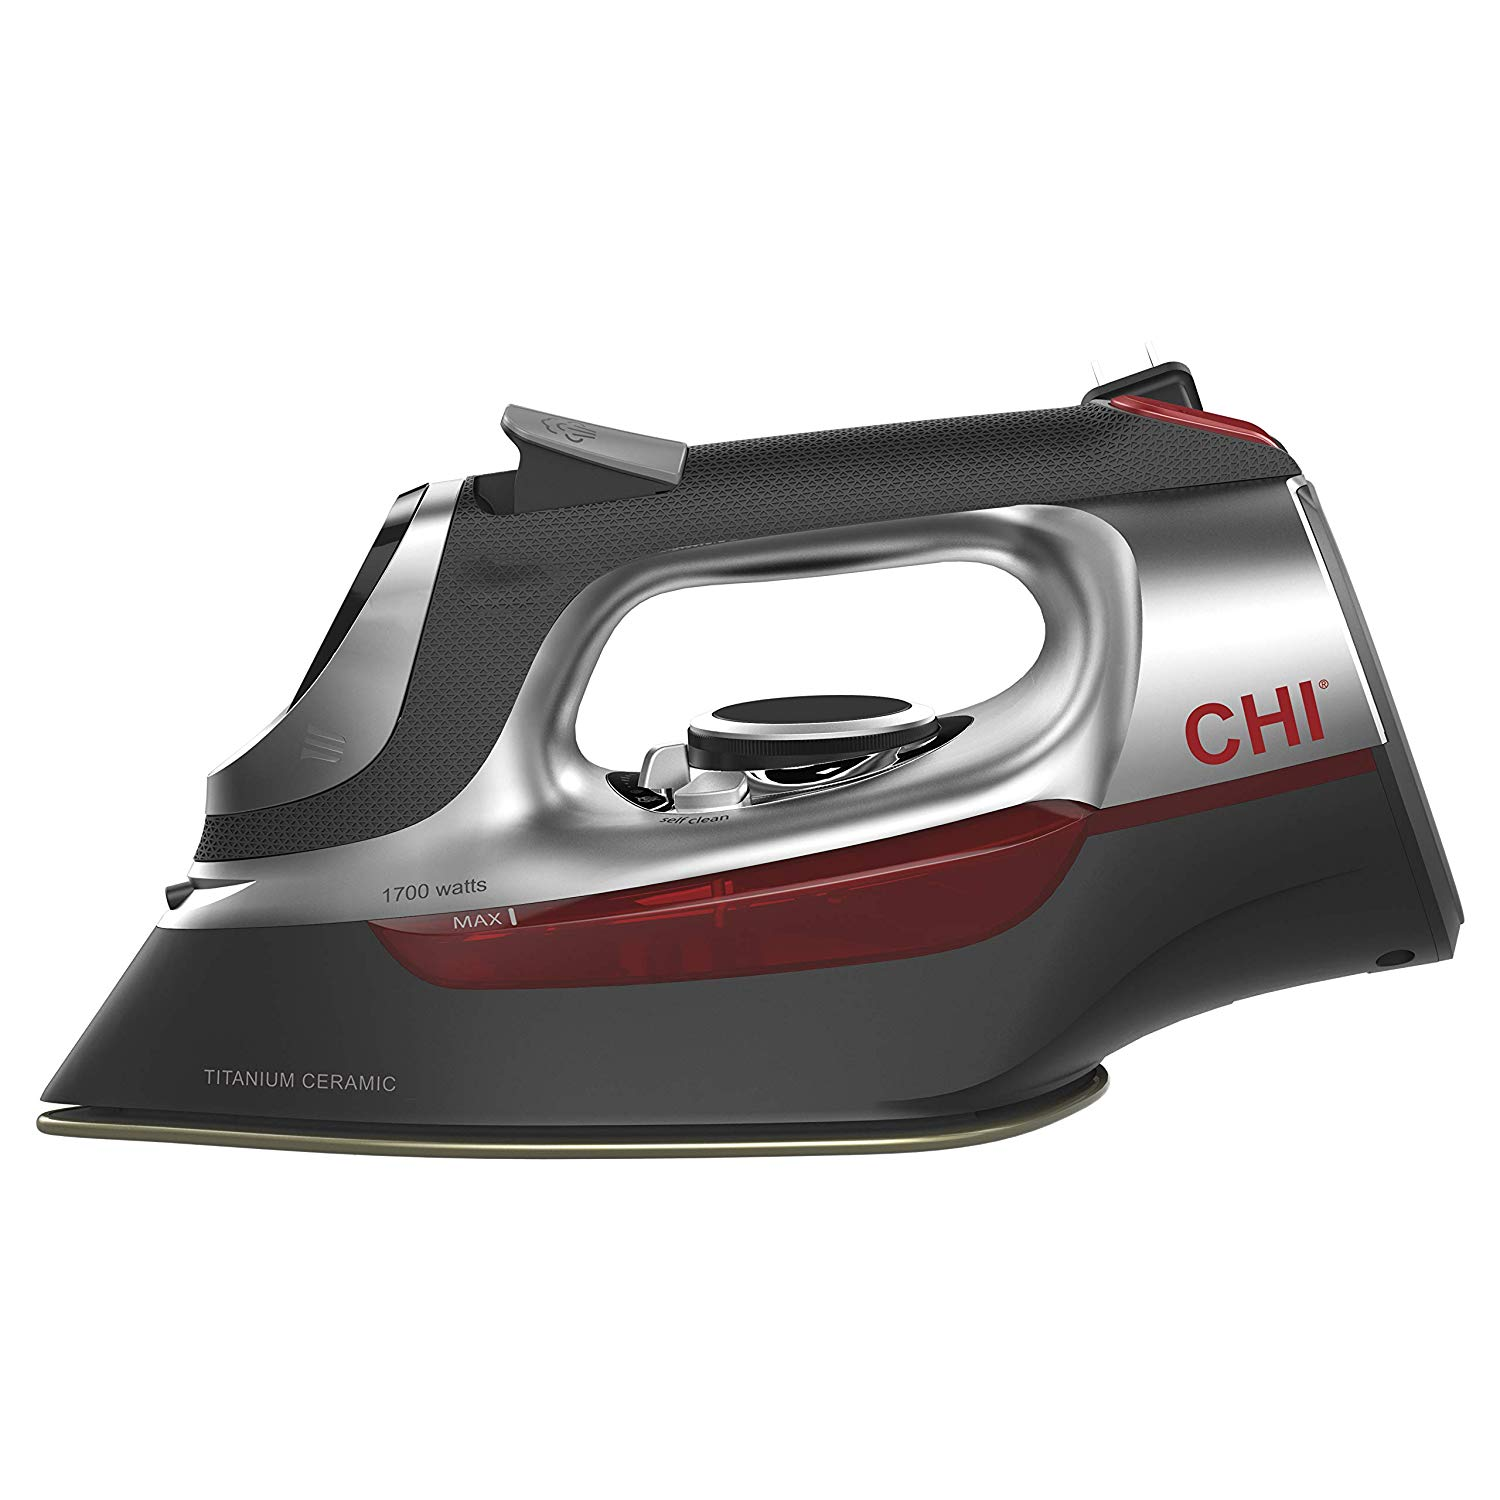 CHI (13102) Steam Iron with Retractable Cord